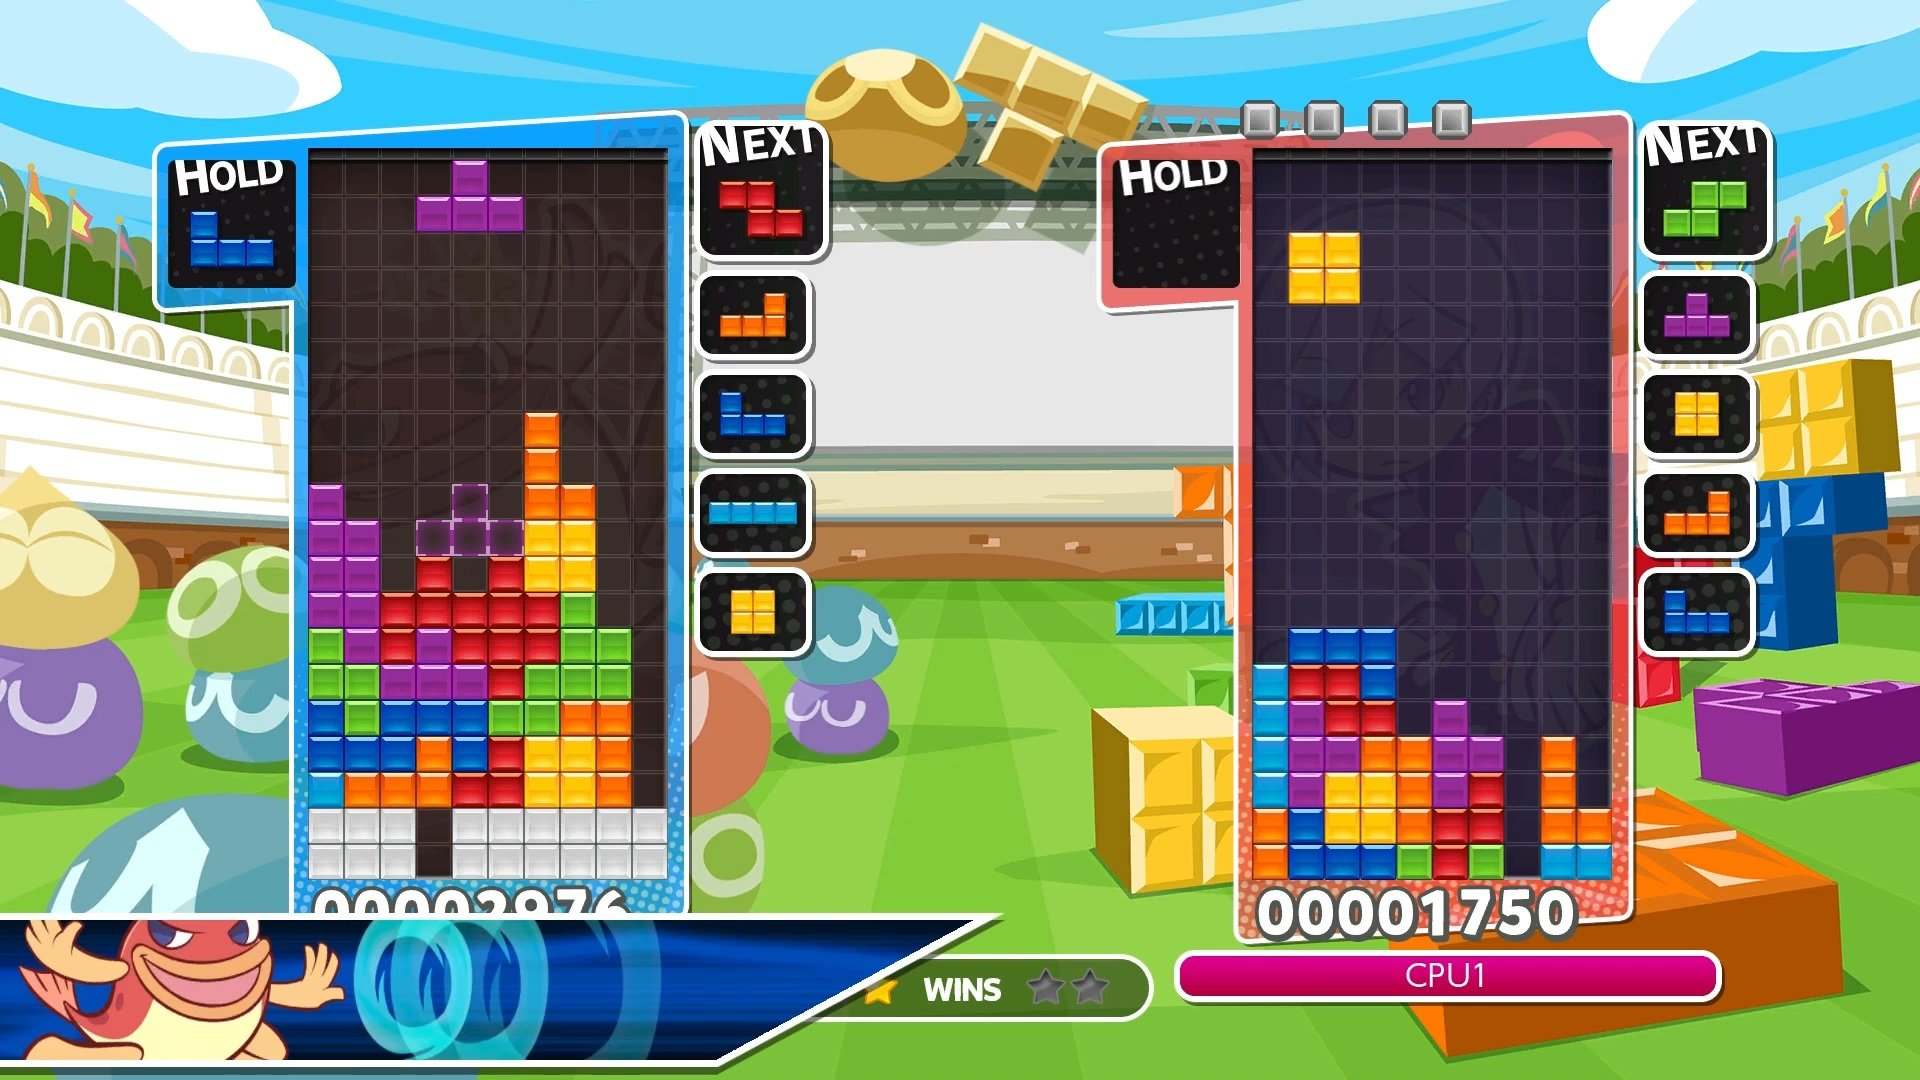 5 Tetris Games You Should Check Out